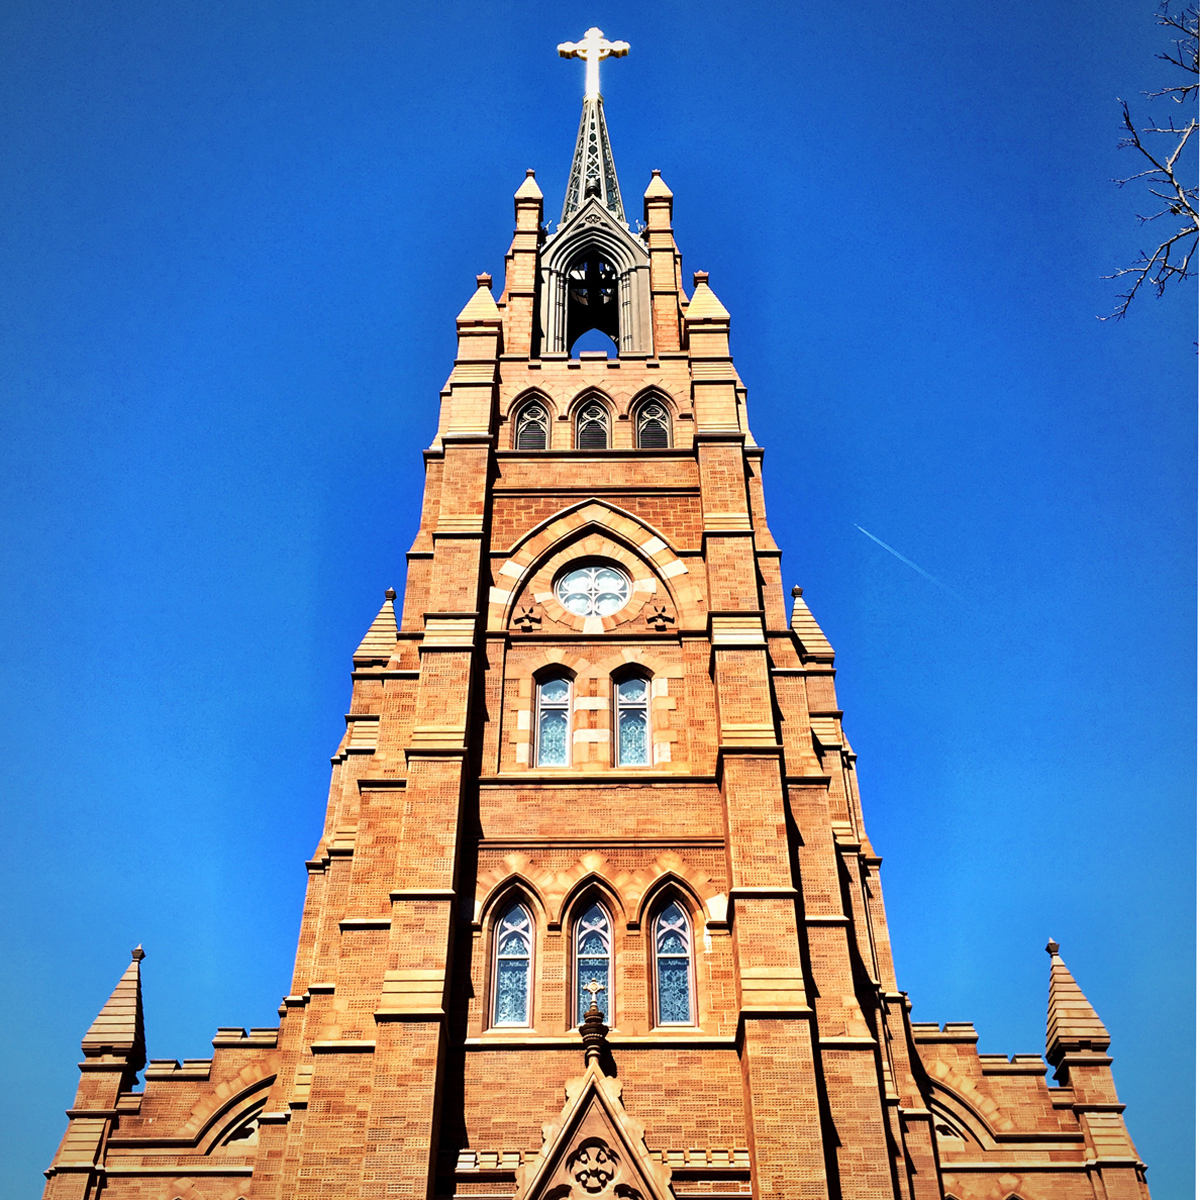 Cathedral of Saint John the Baptist. 120 Broad Street. Architect Patrick Keely